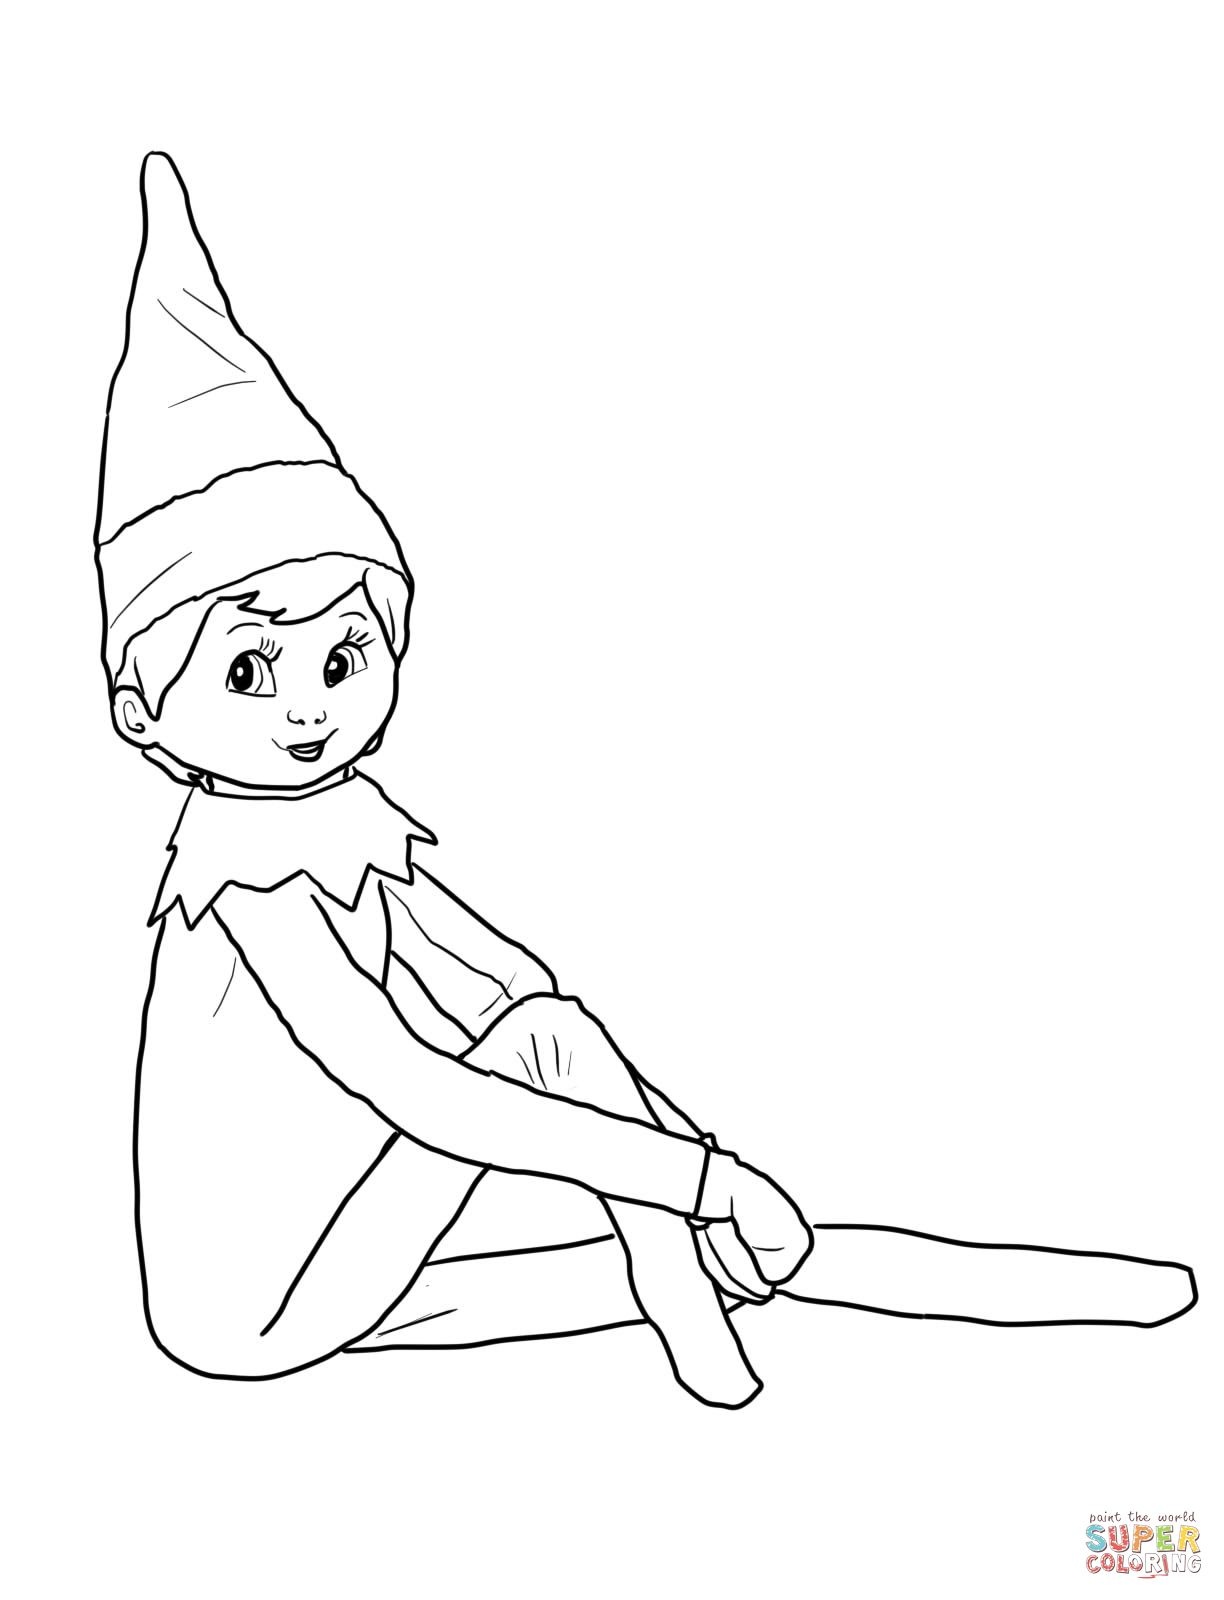 Elf On The Shelf Coloring Pages Google Search Dibujos Para Colorear Imagenes De Navidad Actividades Para Ninos